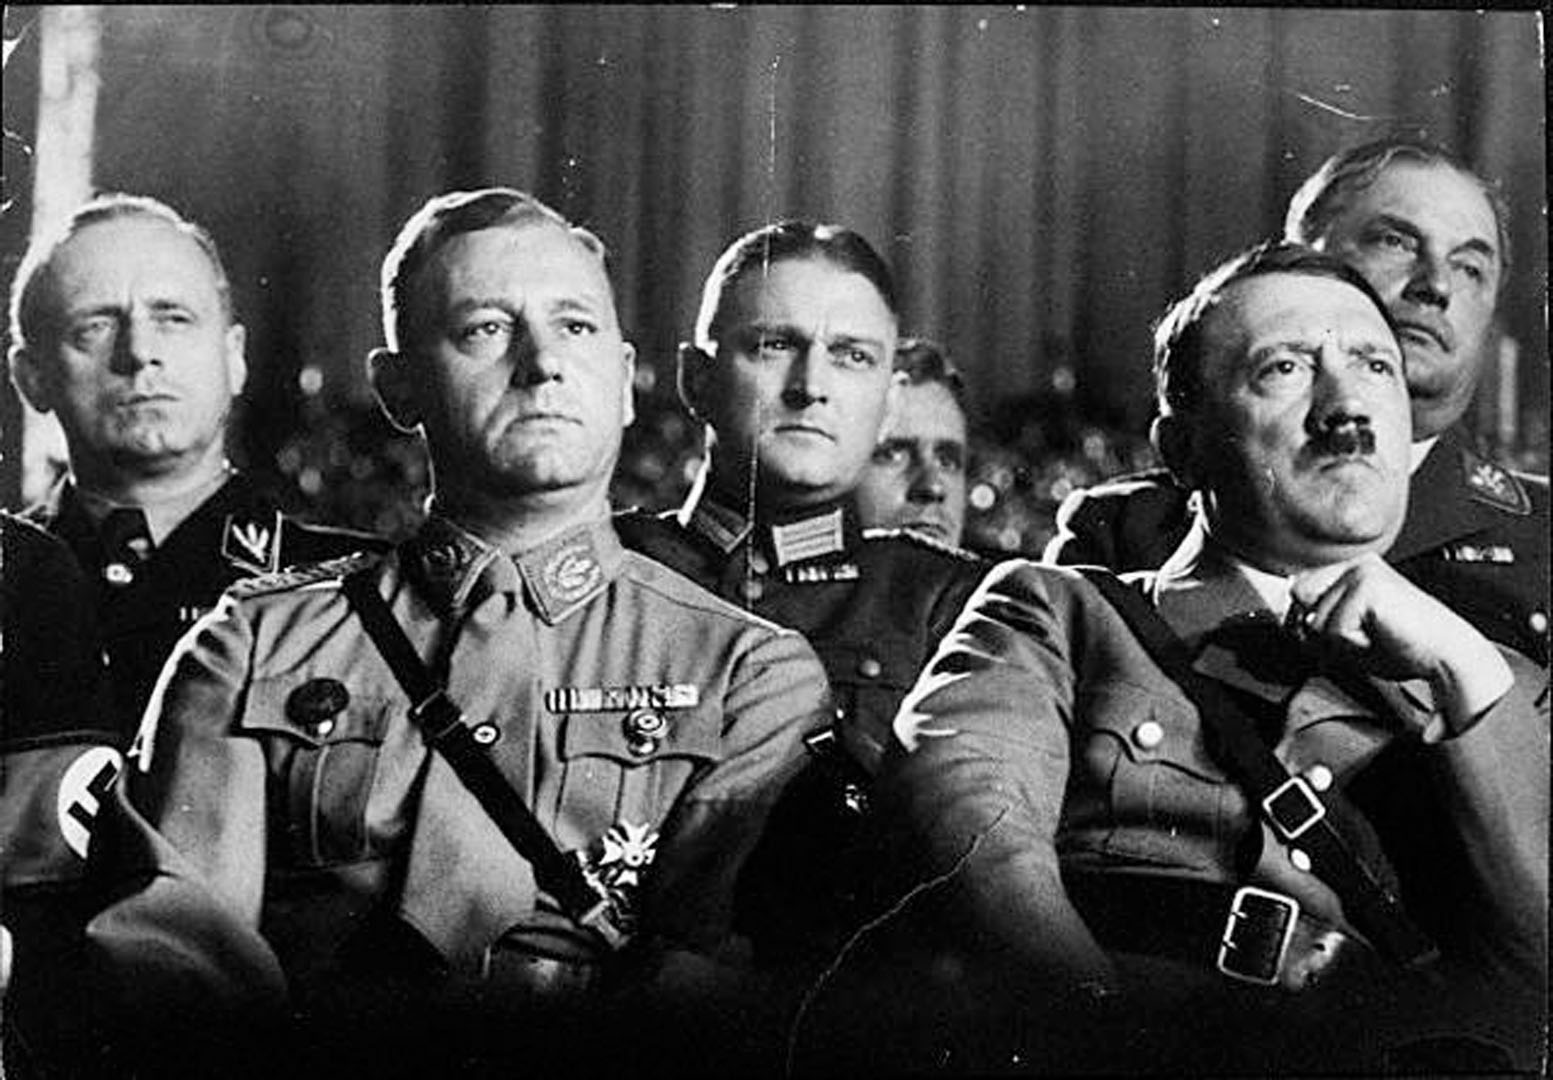 A group of Nazi leaders, including Adolf Hitler, at a National Socialist party congress.